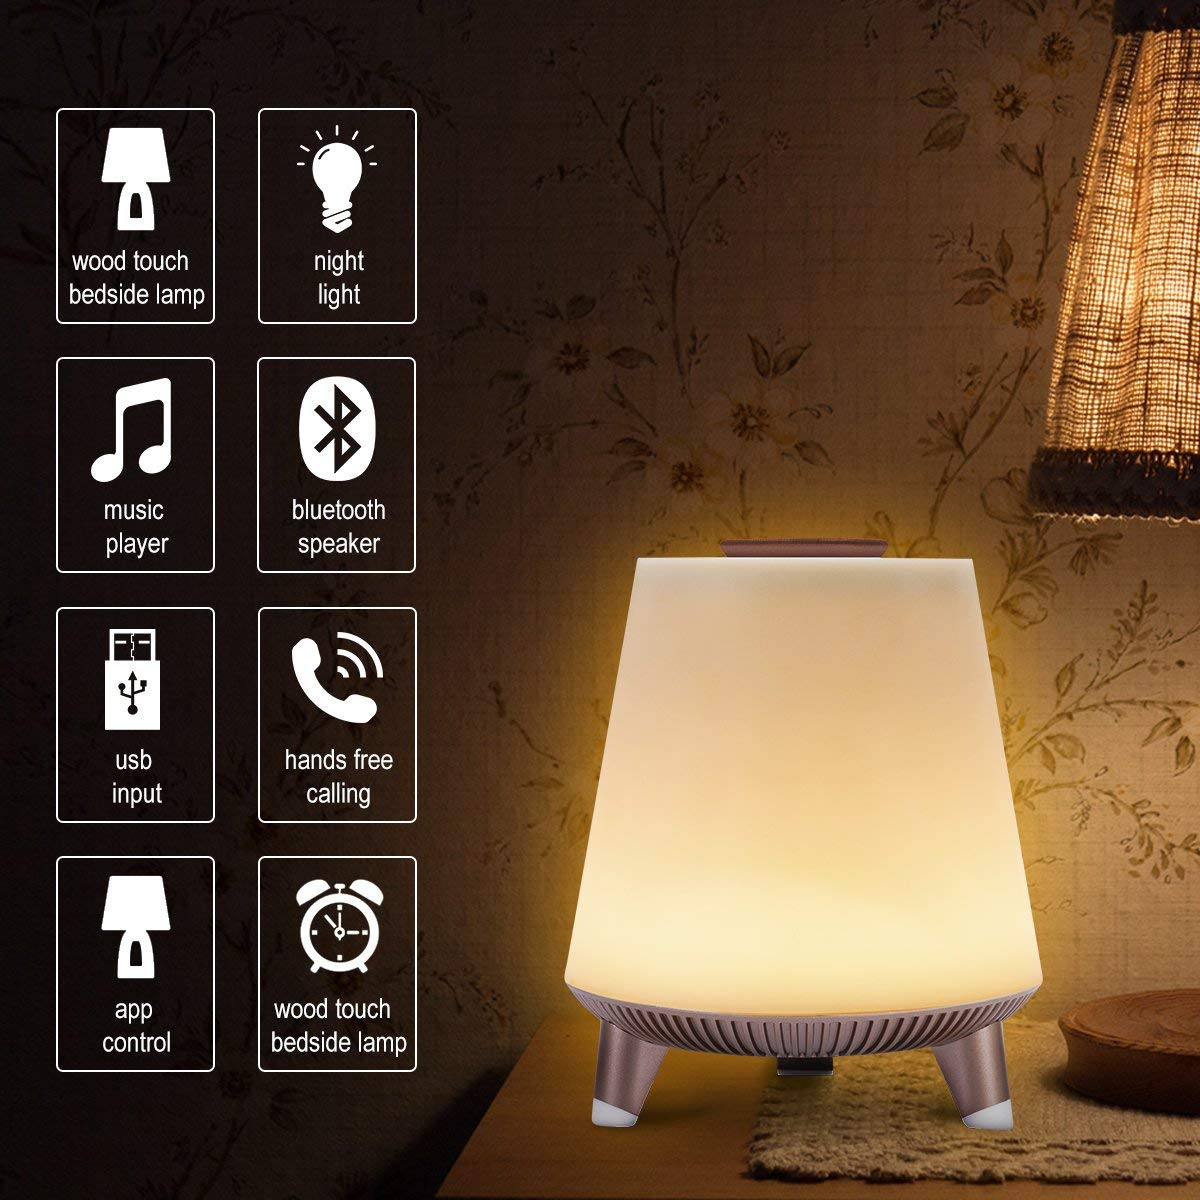 Smart Night Lamps Speakers,Table Lights Bedside,SPARKWAV Wireless Bluetooth Sound Desk,Clocks,Home Decor Audios Set